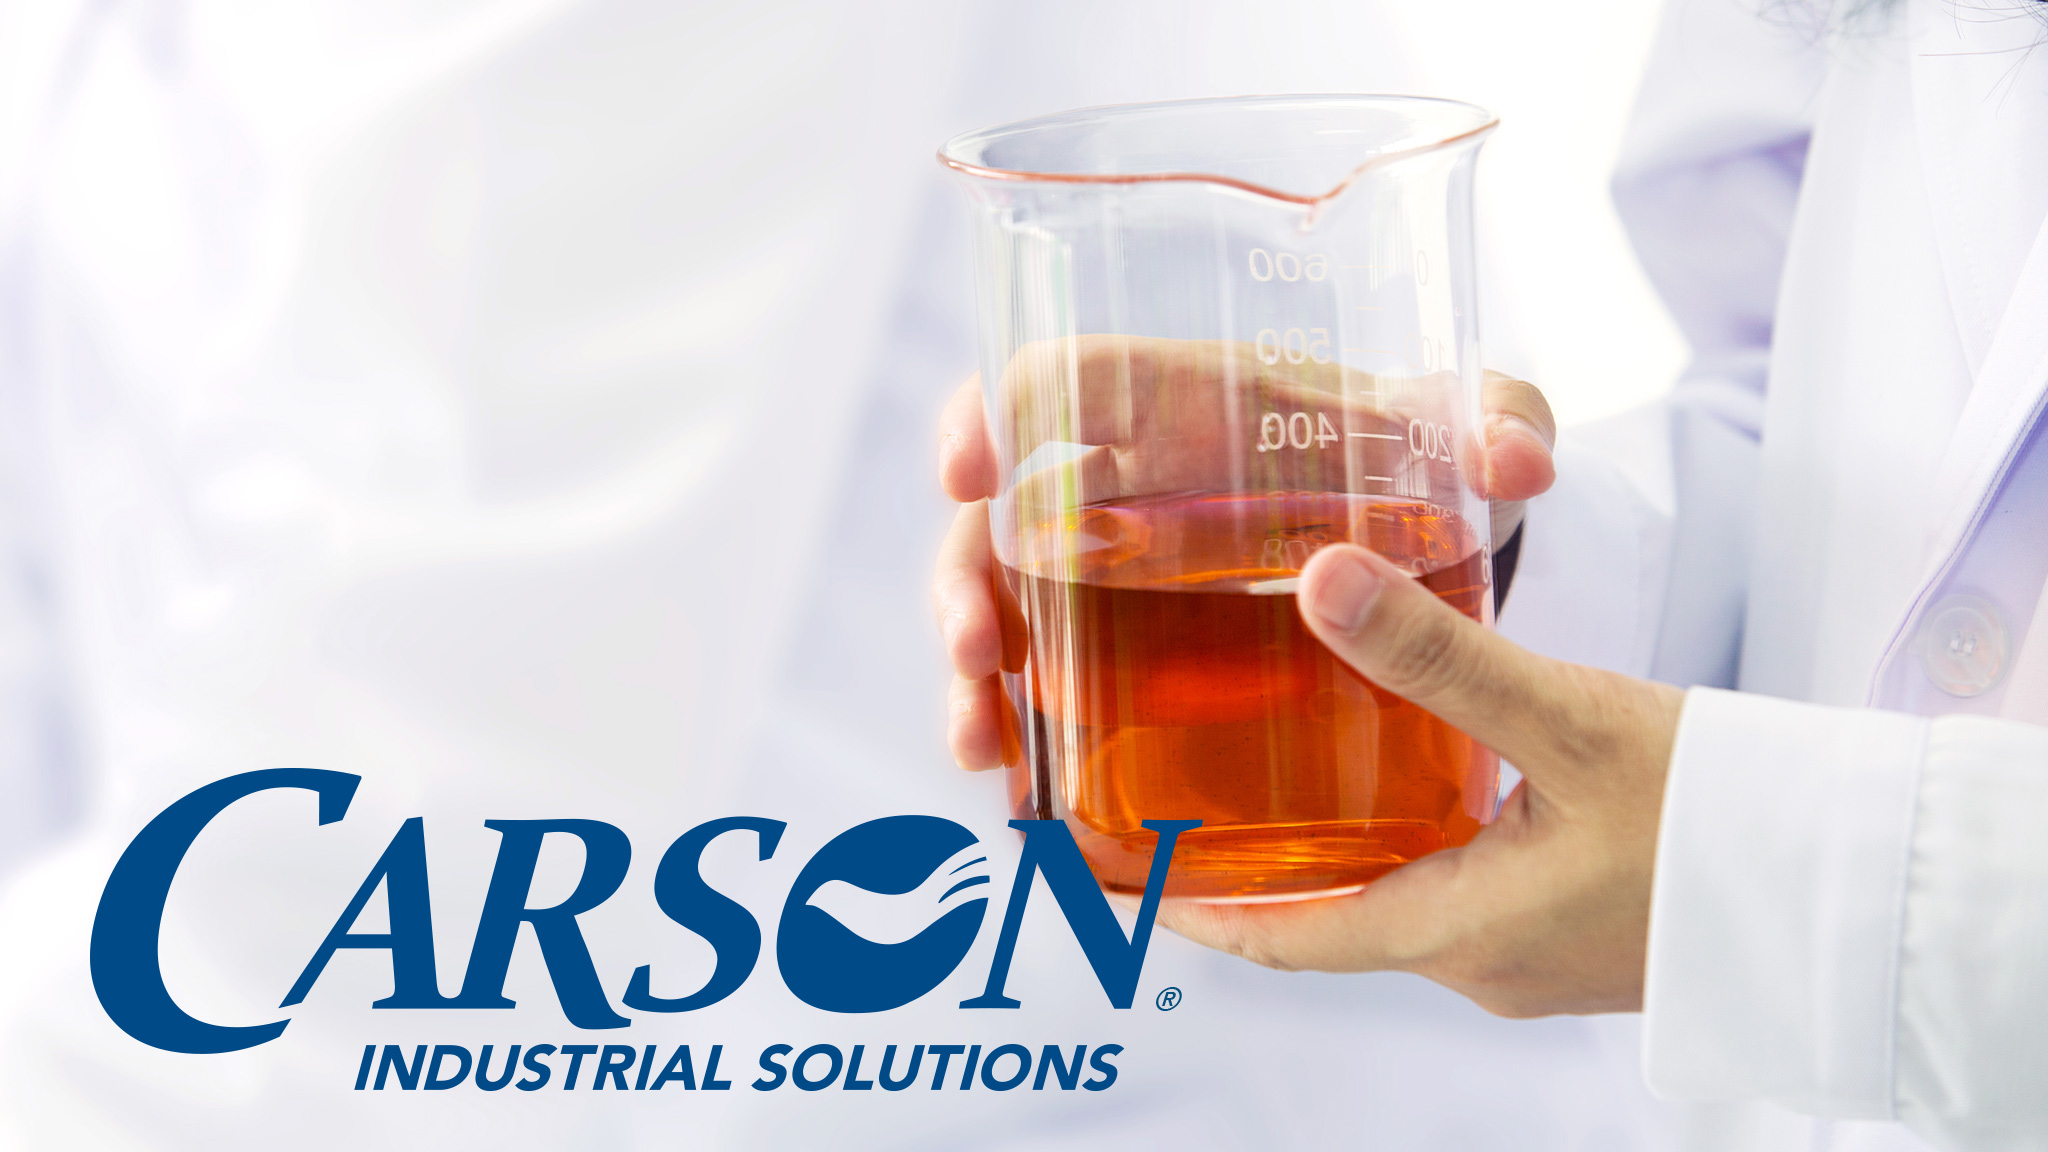 carson industrial solutions web slider